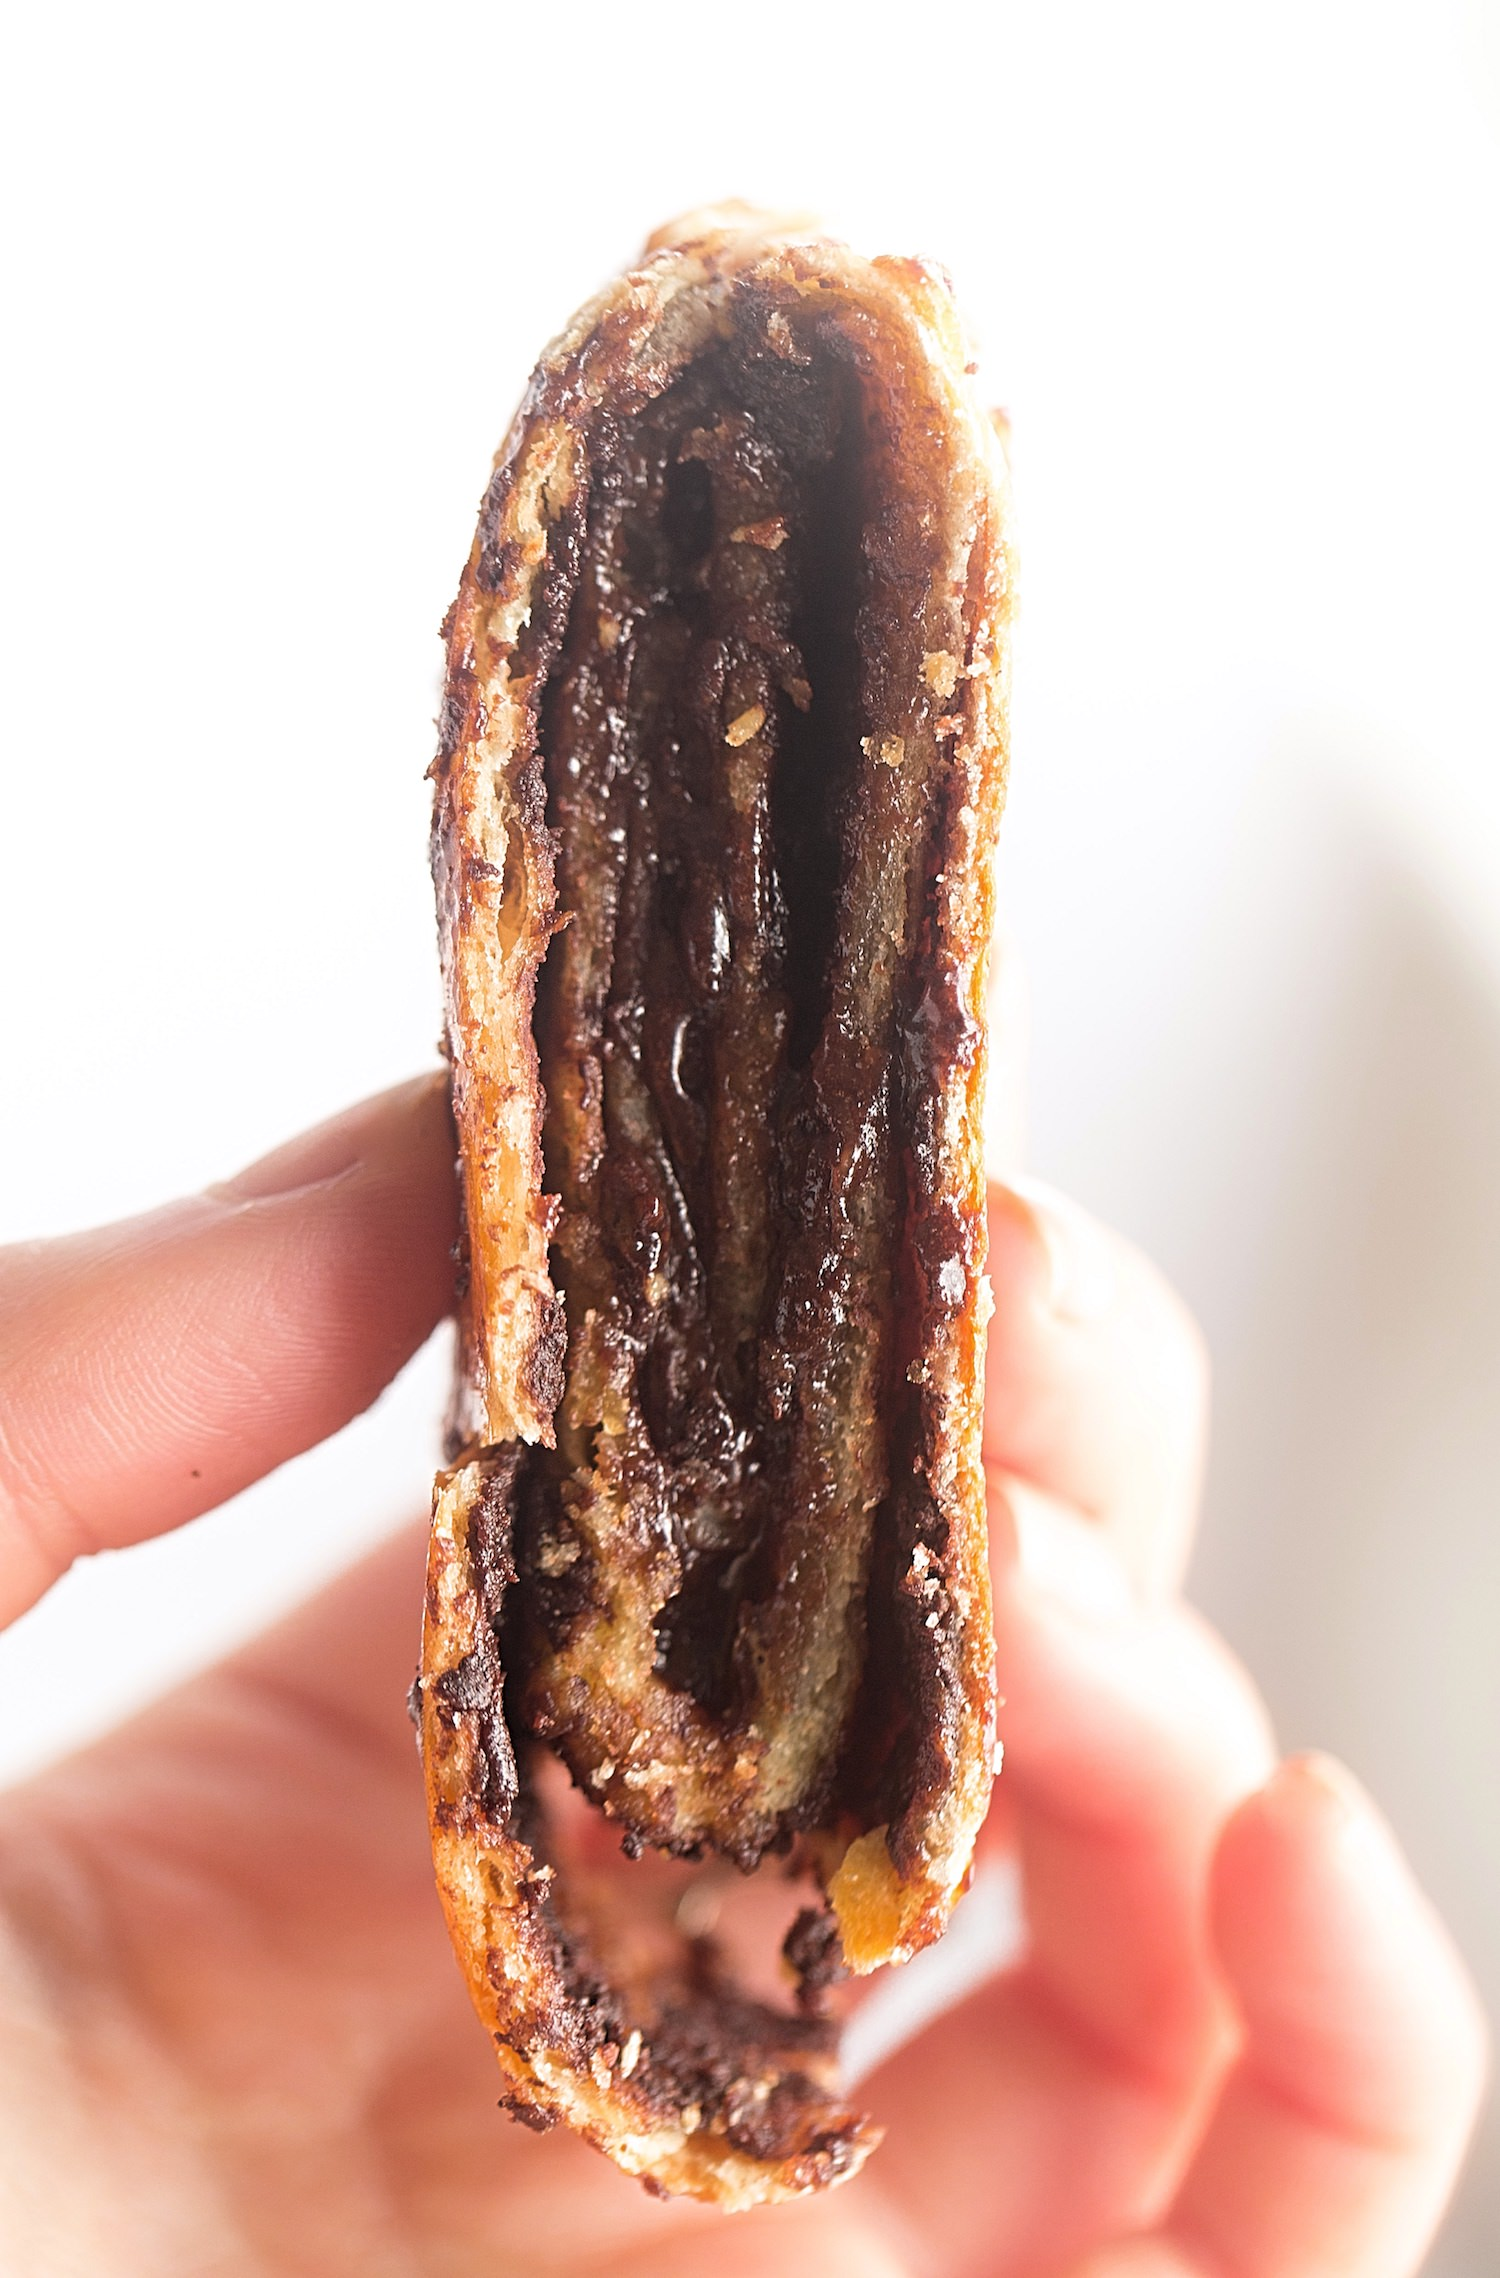 Better than Babka: Kokosh Cake - thin layers of no-rise yeast dough stuffed with an oozing, gooey chocolate filling. So quick and rich! | TrufflesandTrends.com